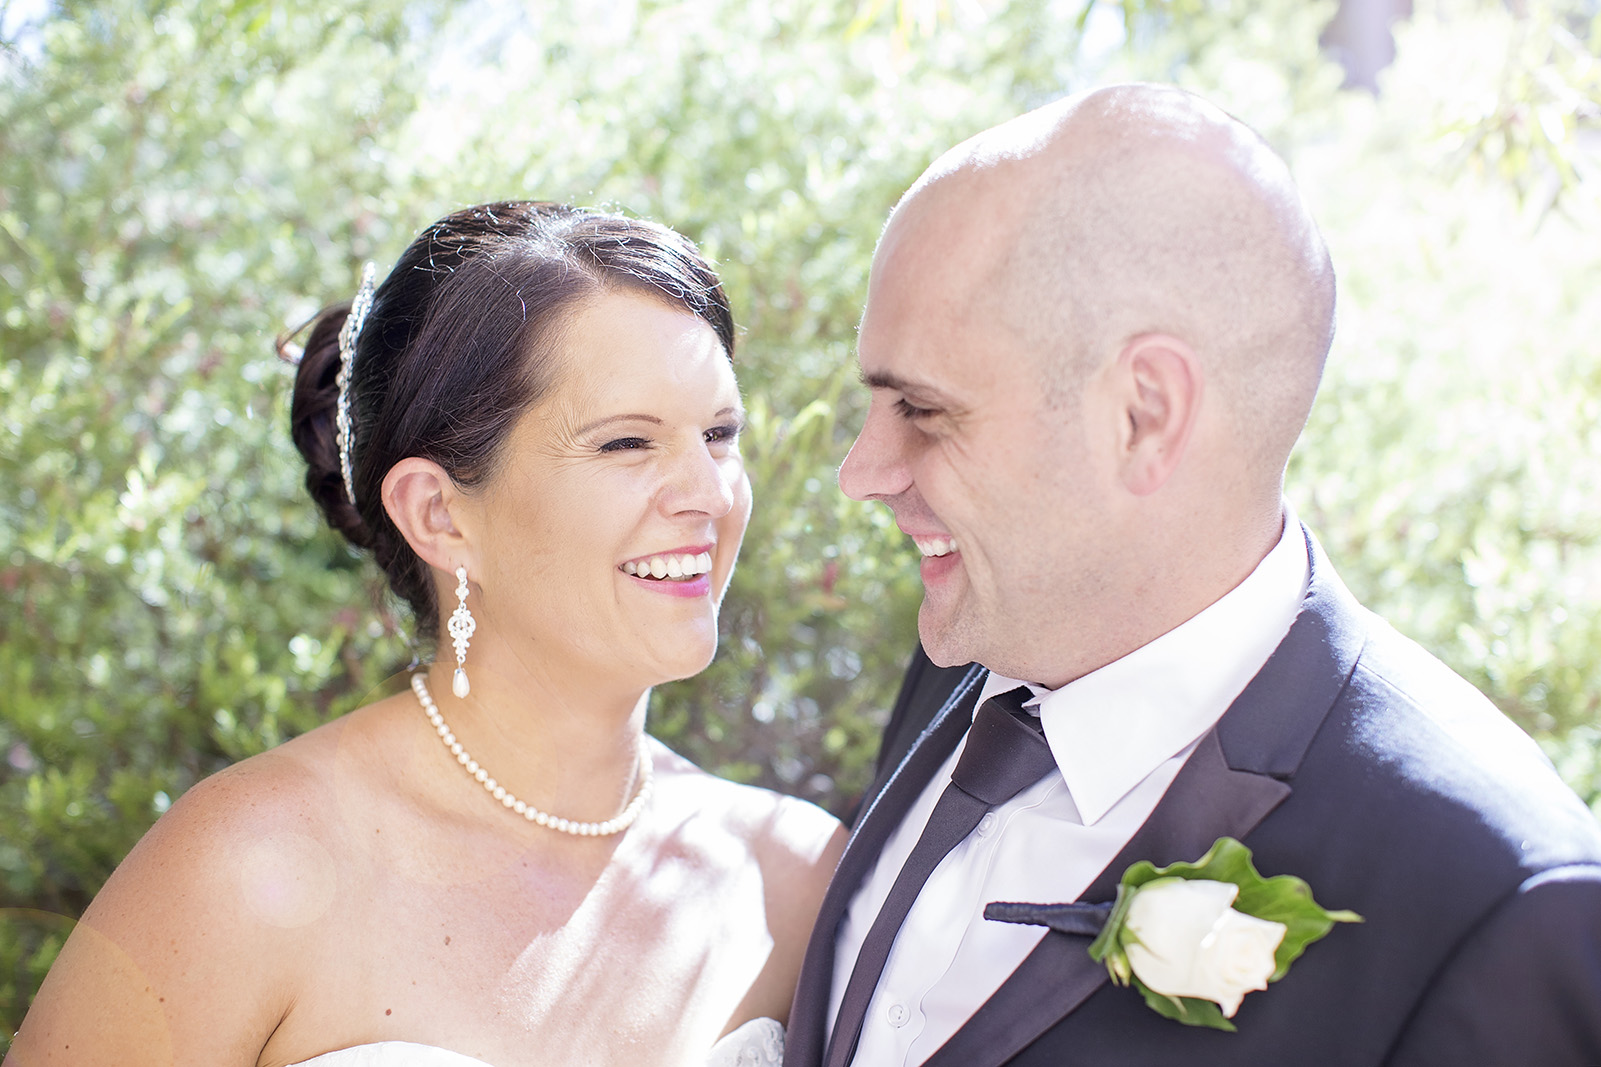 Friendly Adelaide Wedding Photographer 010.jpg